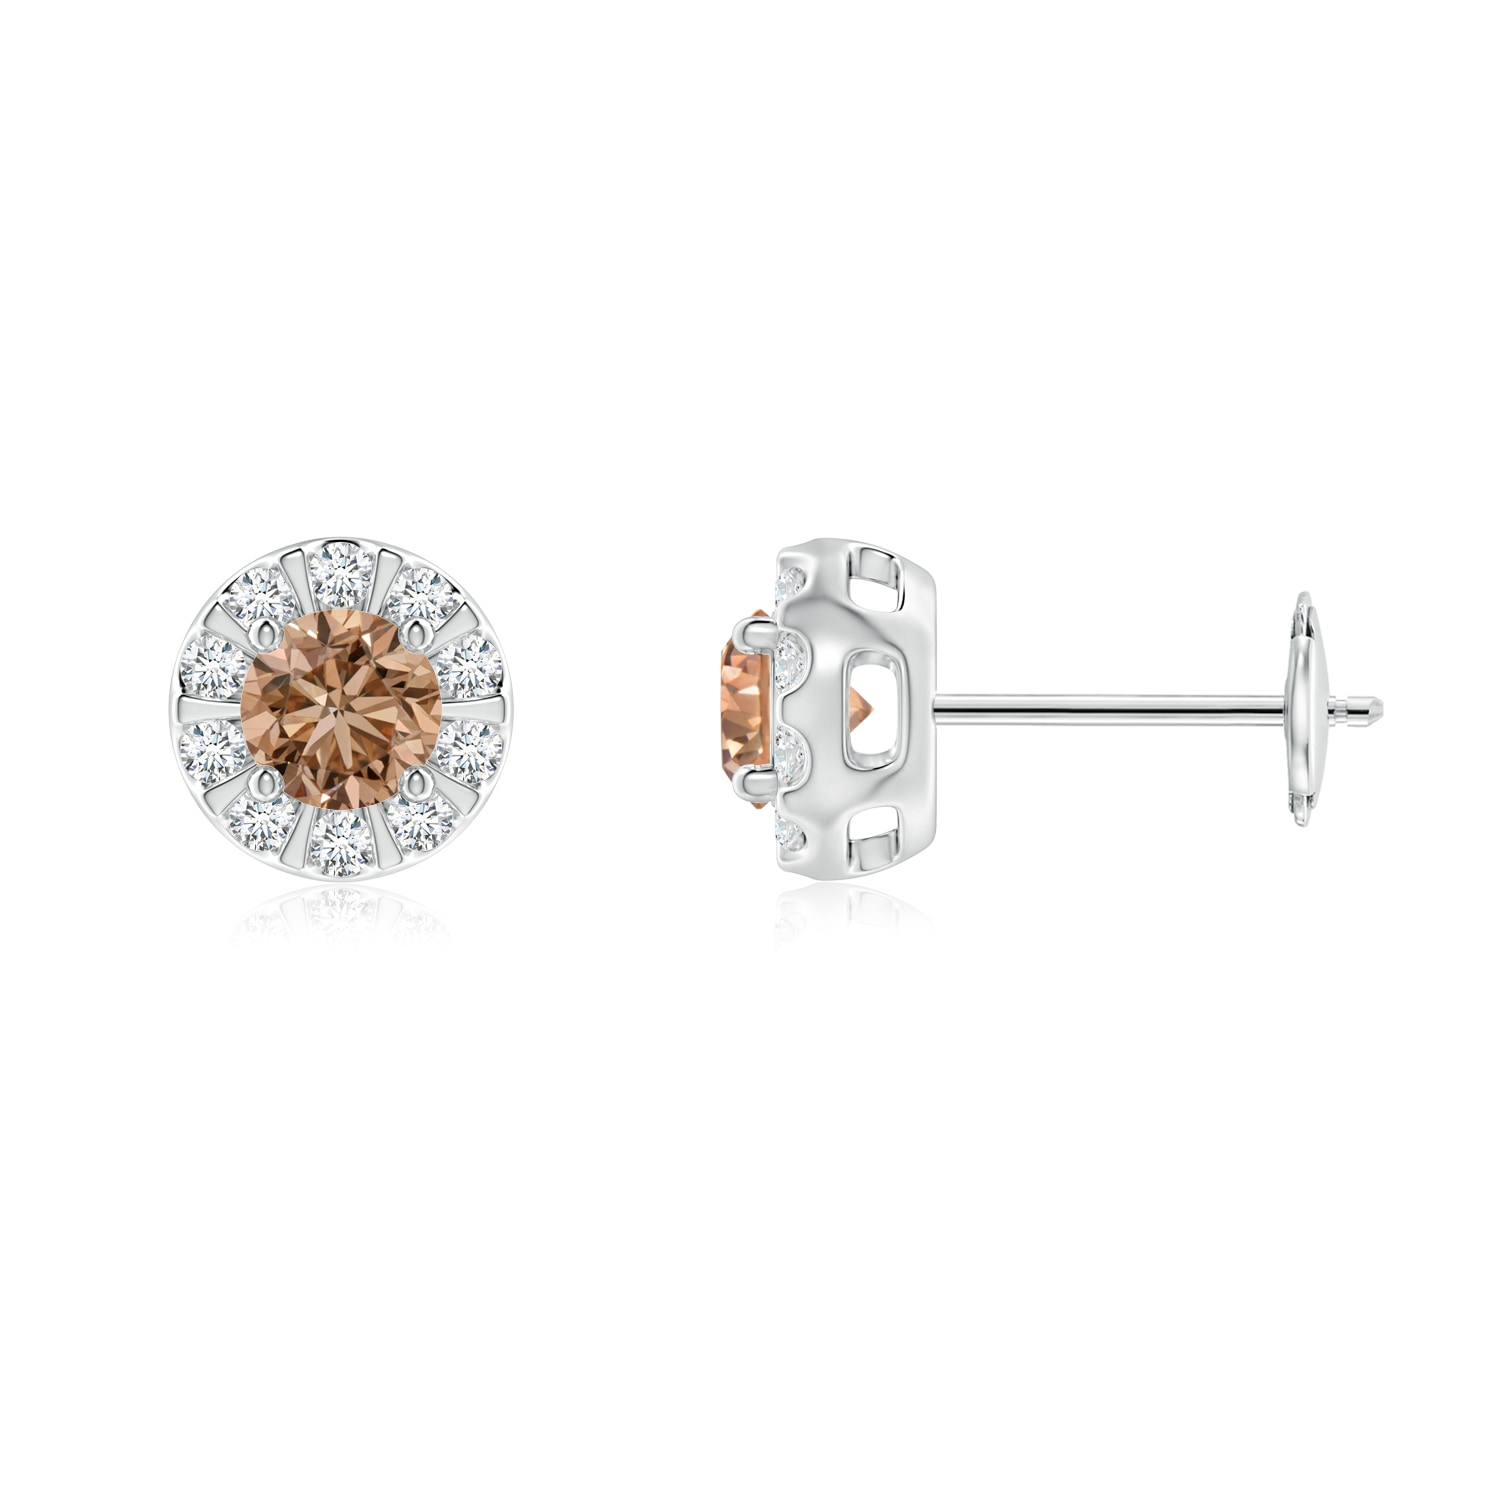 Brown Diamond Stud Earrings With Bar Set Halo Angara